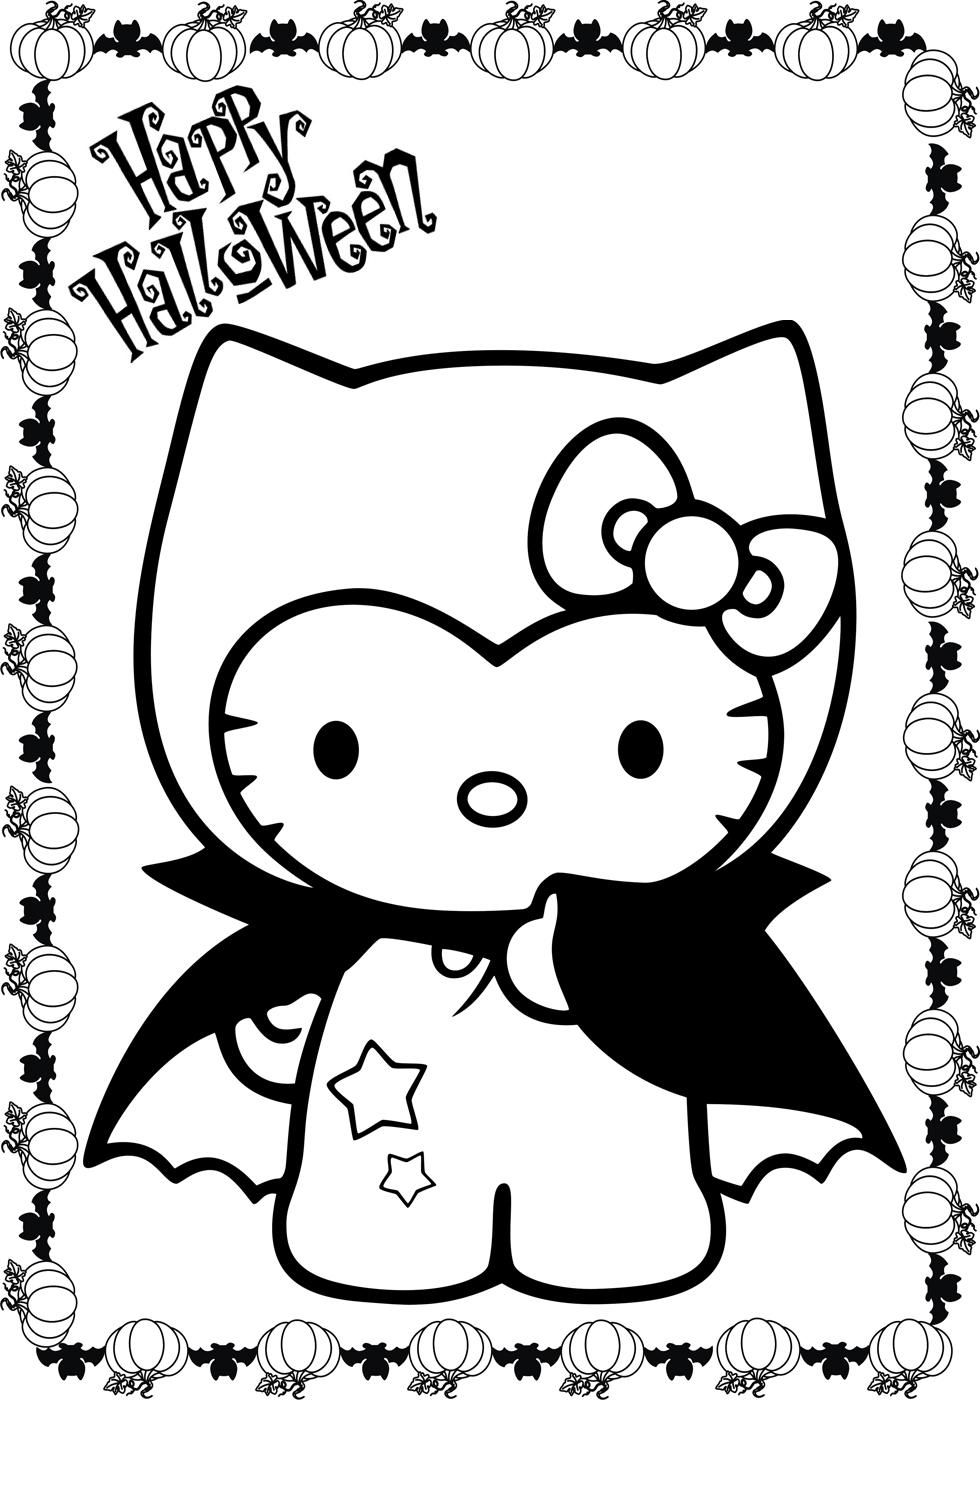 Hello Kitty Halloween Coloring Pages Best Coloring Pages For Kids Hello Kitty Coloring Hello Kitty Halloween Hello Kitty Colouring Pages